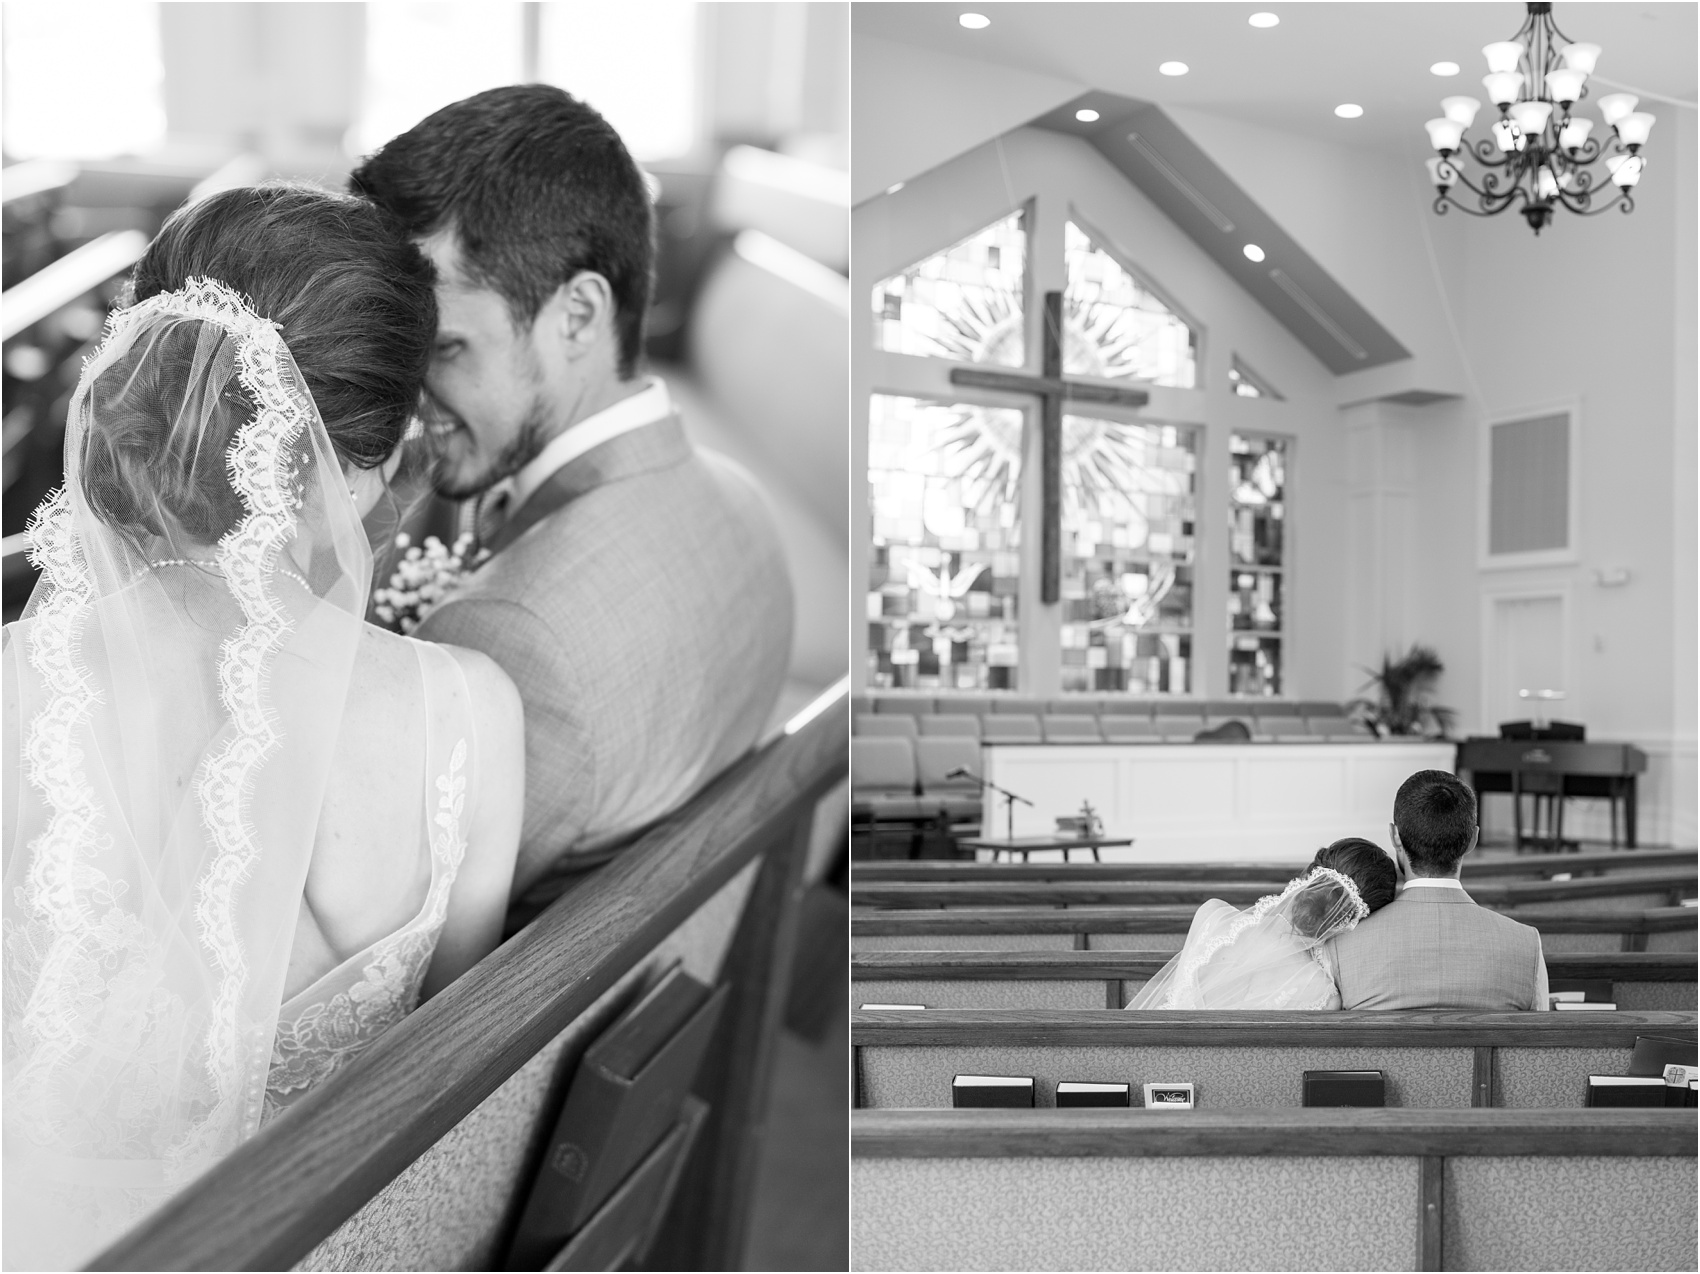 Savannah Eve Photography- Williams Wedding- Blog-39.jpg